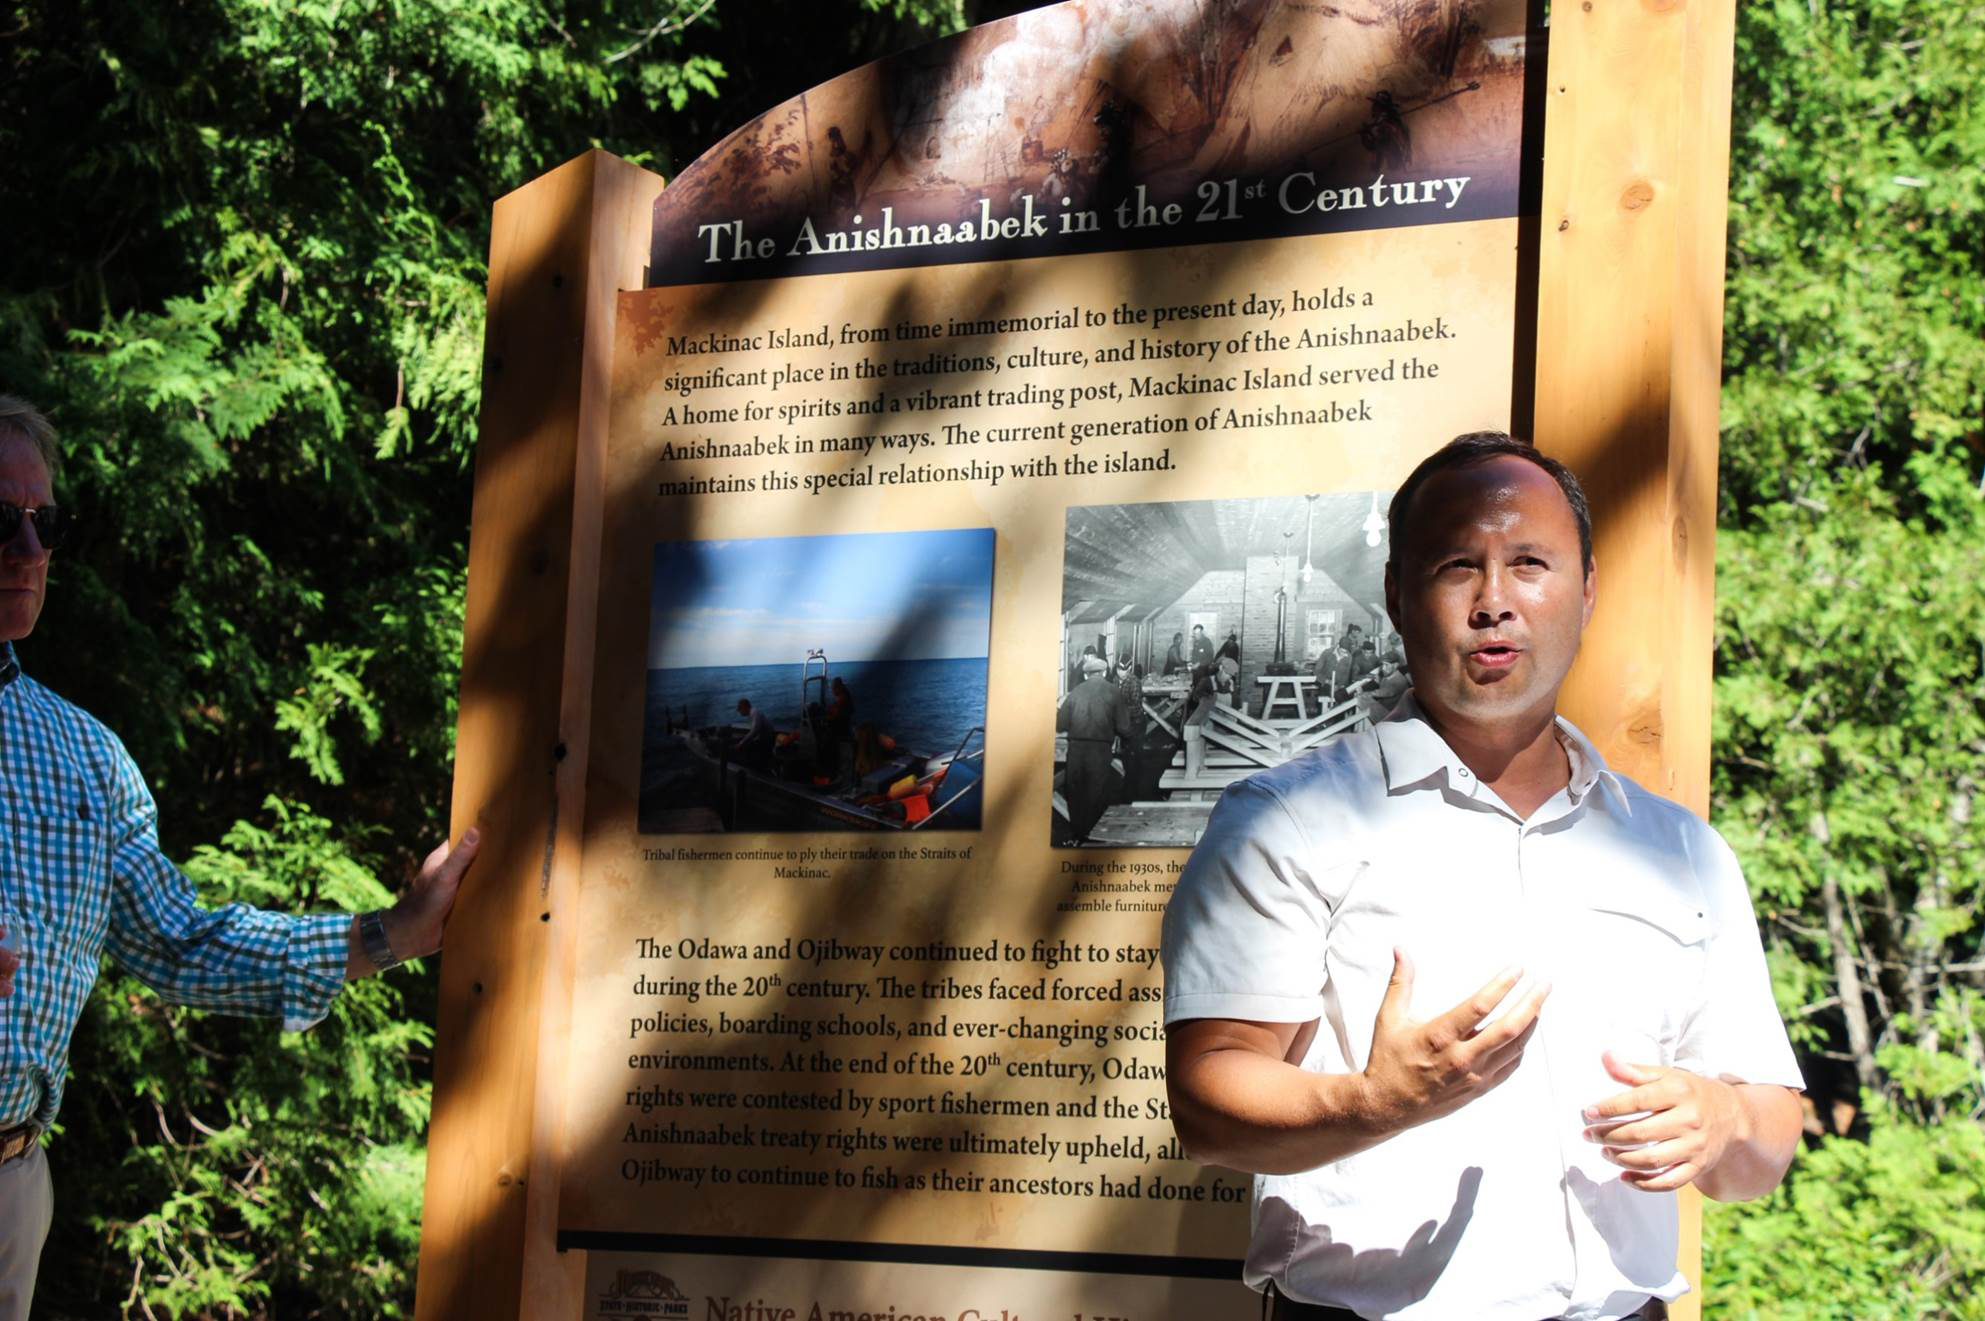 Eric Hemenway, director of Archives and Records for the Little Traverse Bay Band of Odawa Indians, drafted the language for the interpretive panels.